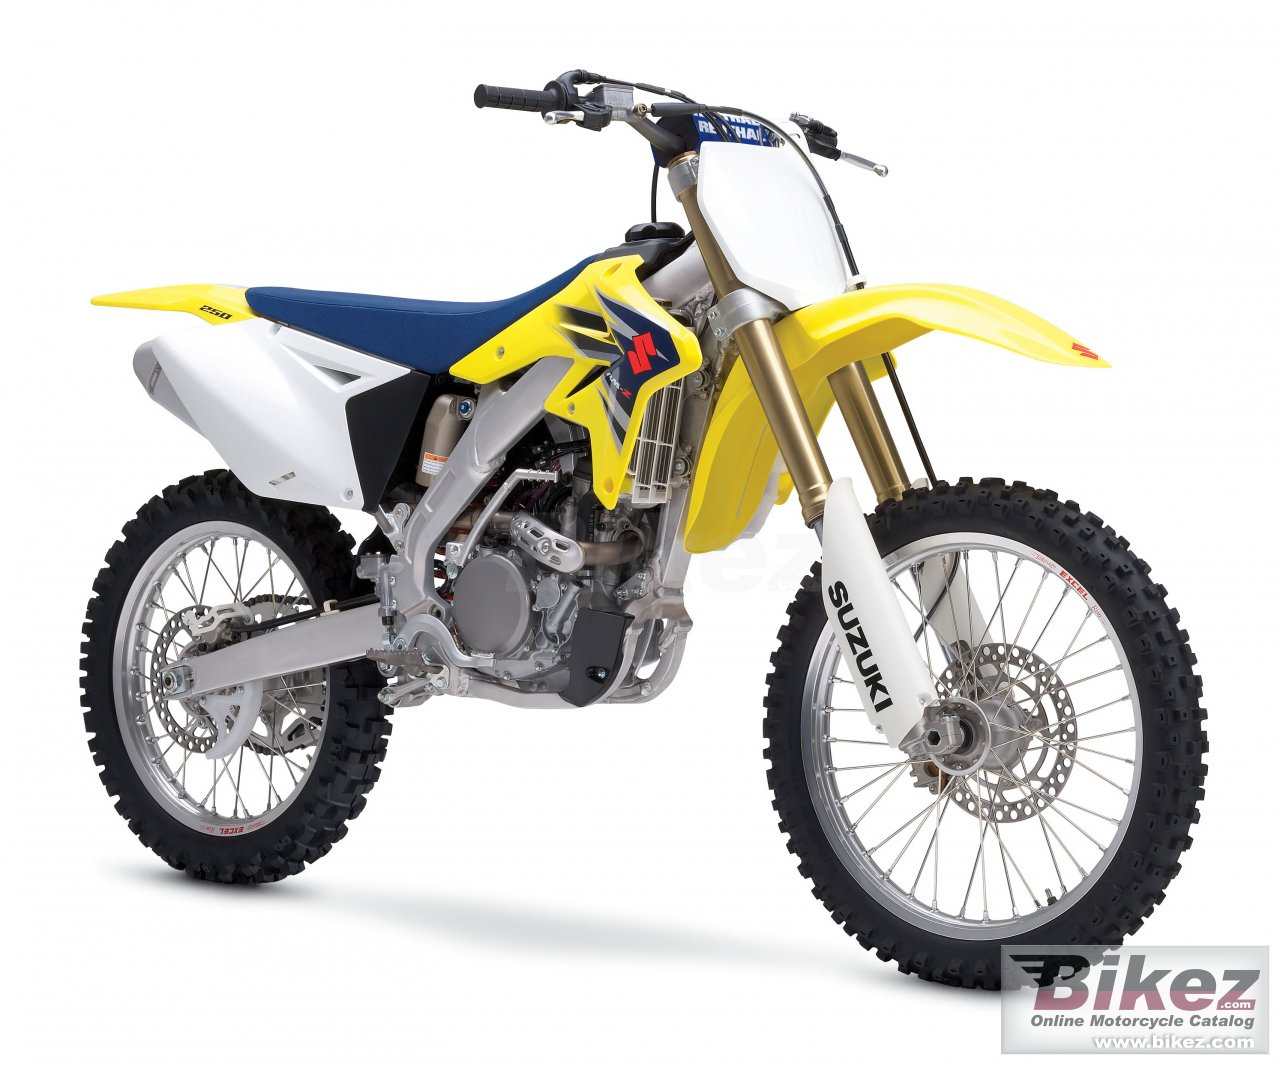 Big Suzuki rm-z 250 picture and wallpaper from Bikez.com